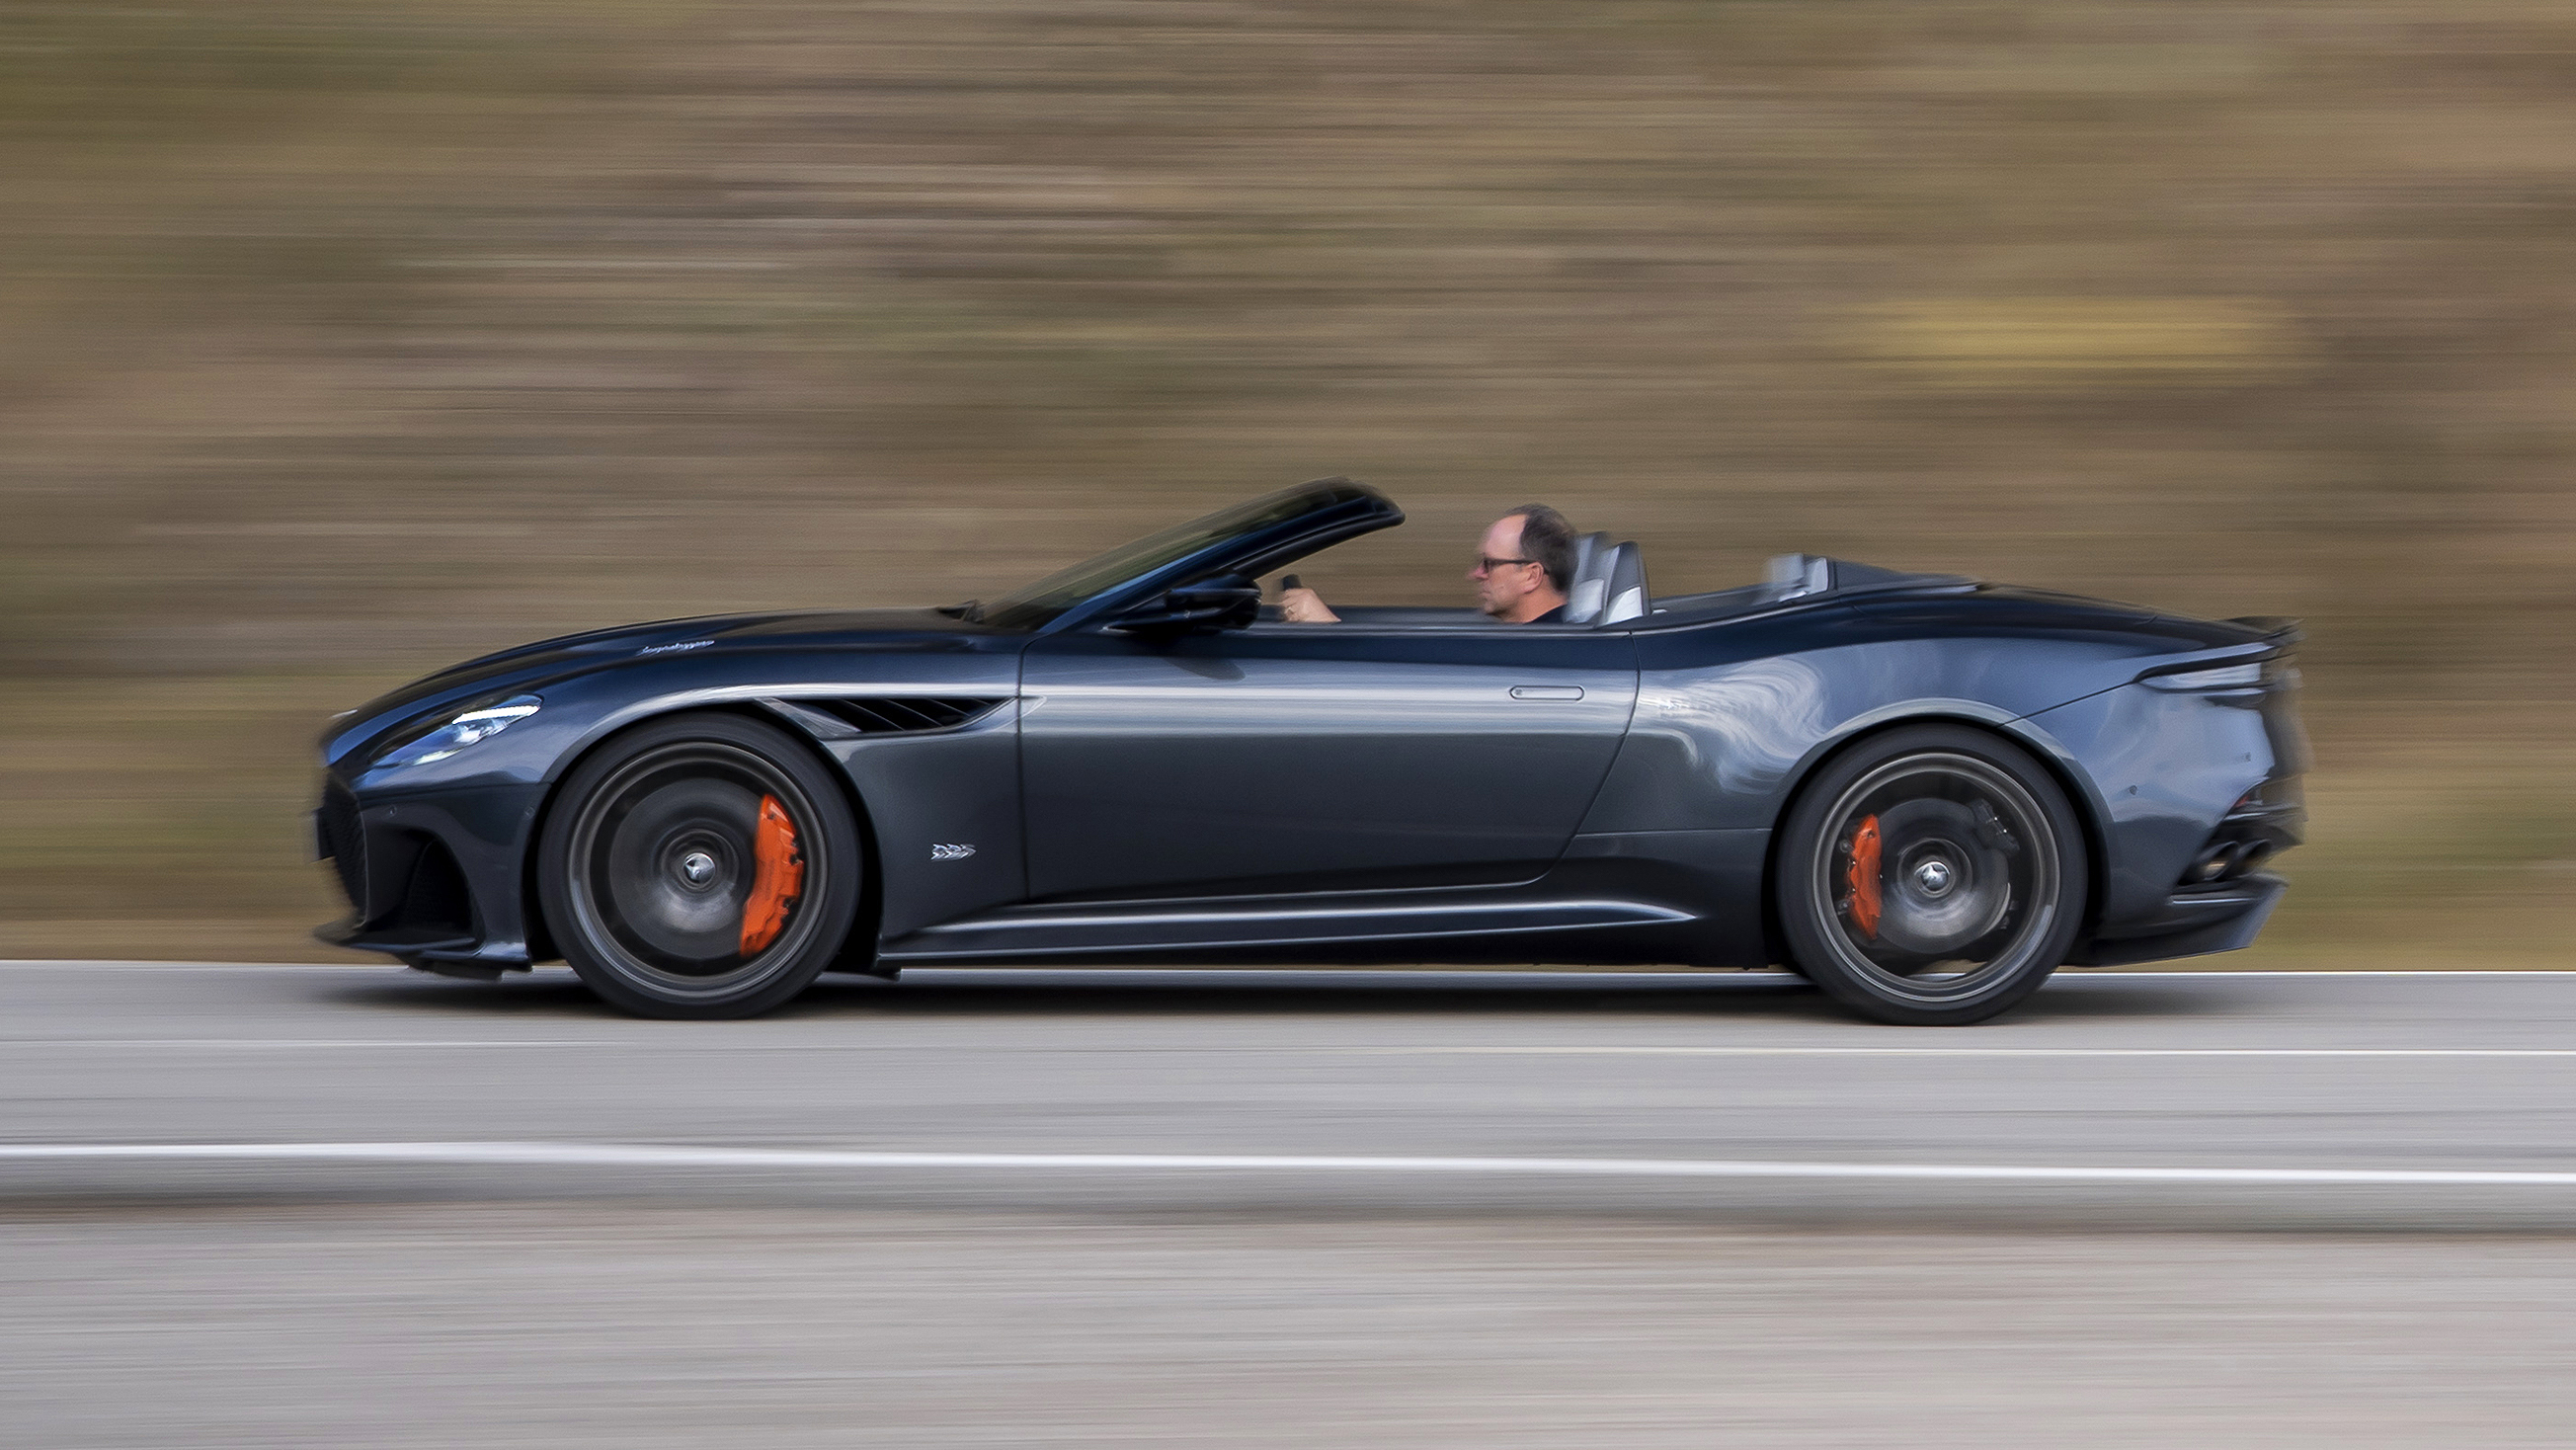 Aston Martin Dbs Volante Review 715bhp Roadster Driven Top Gear